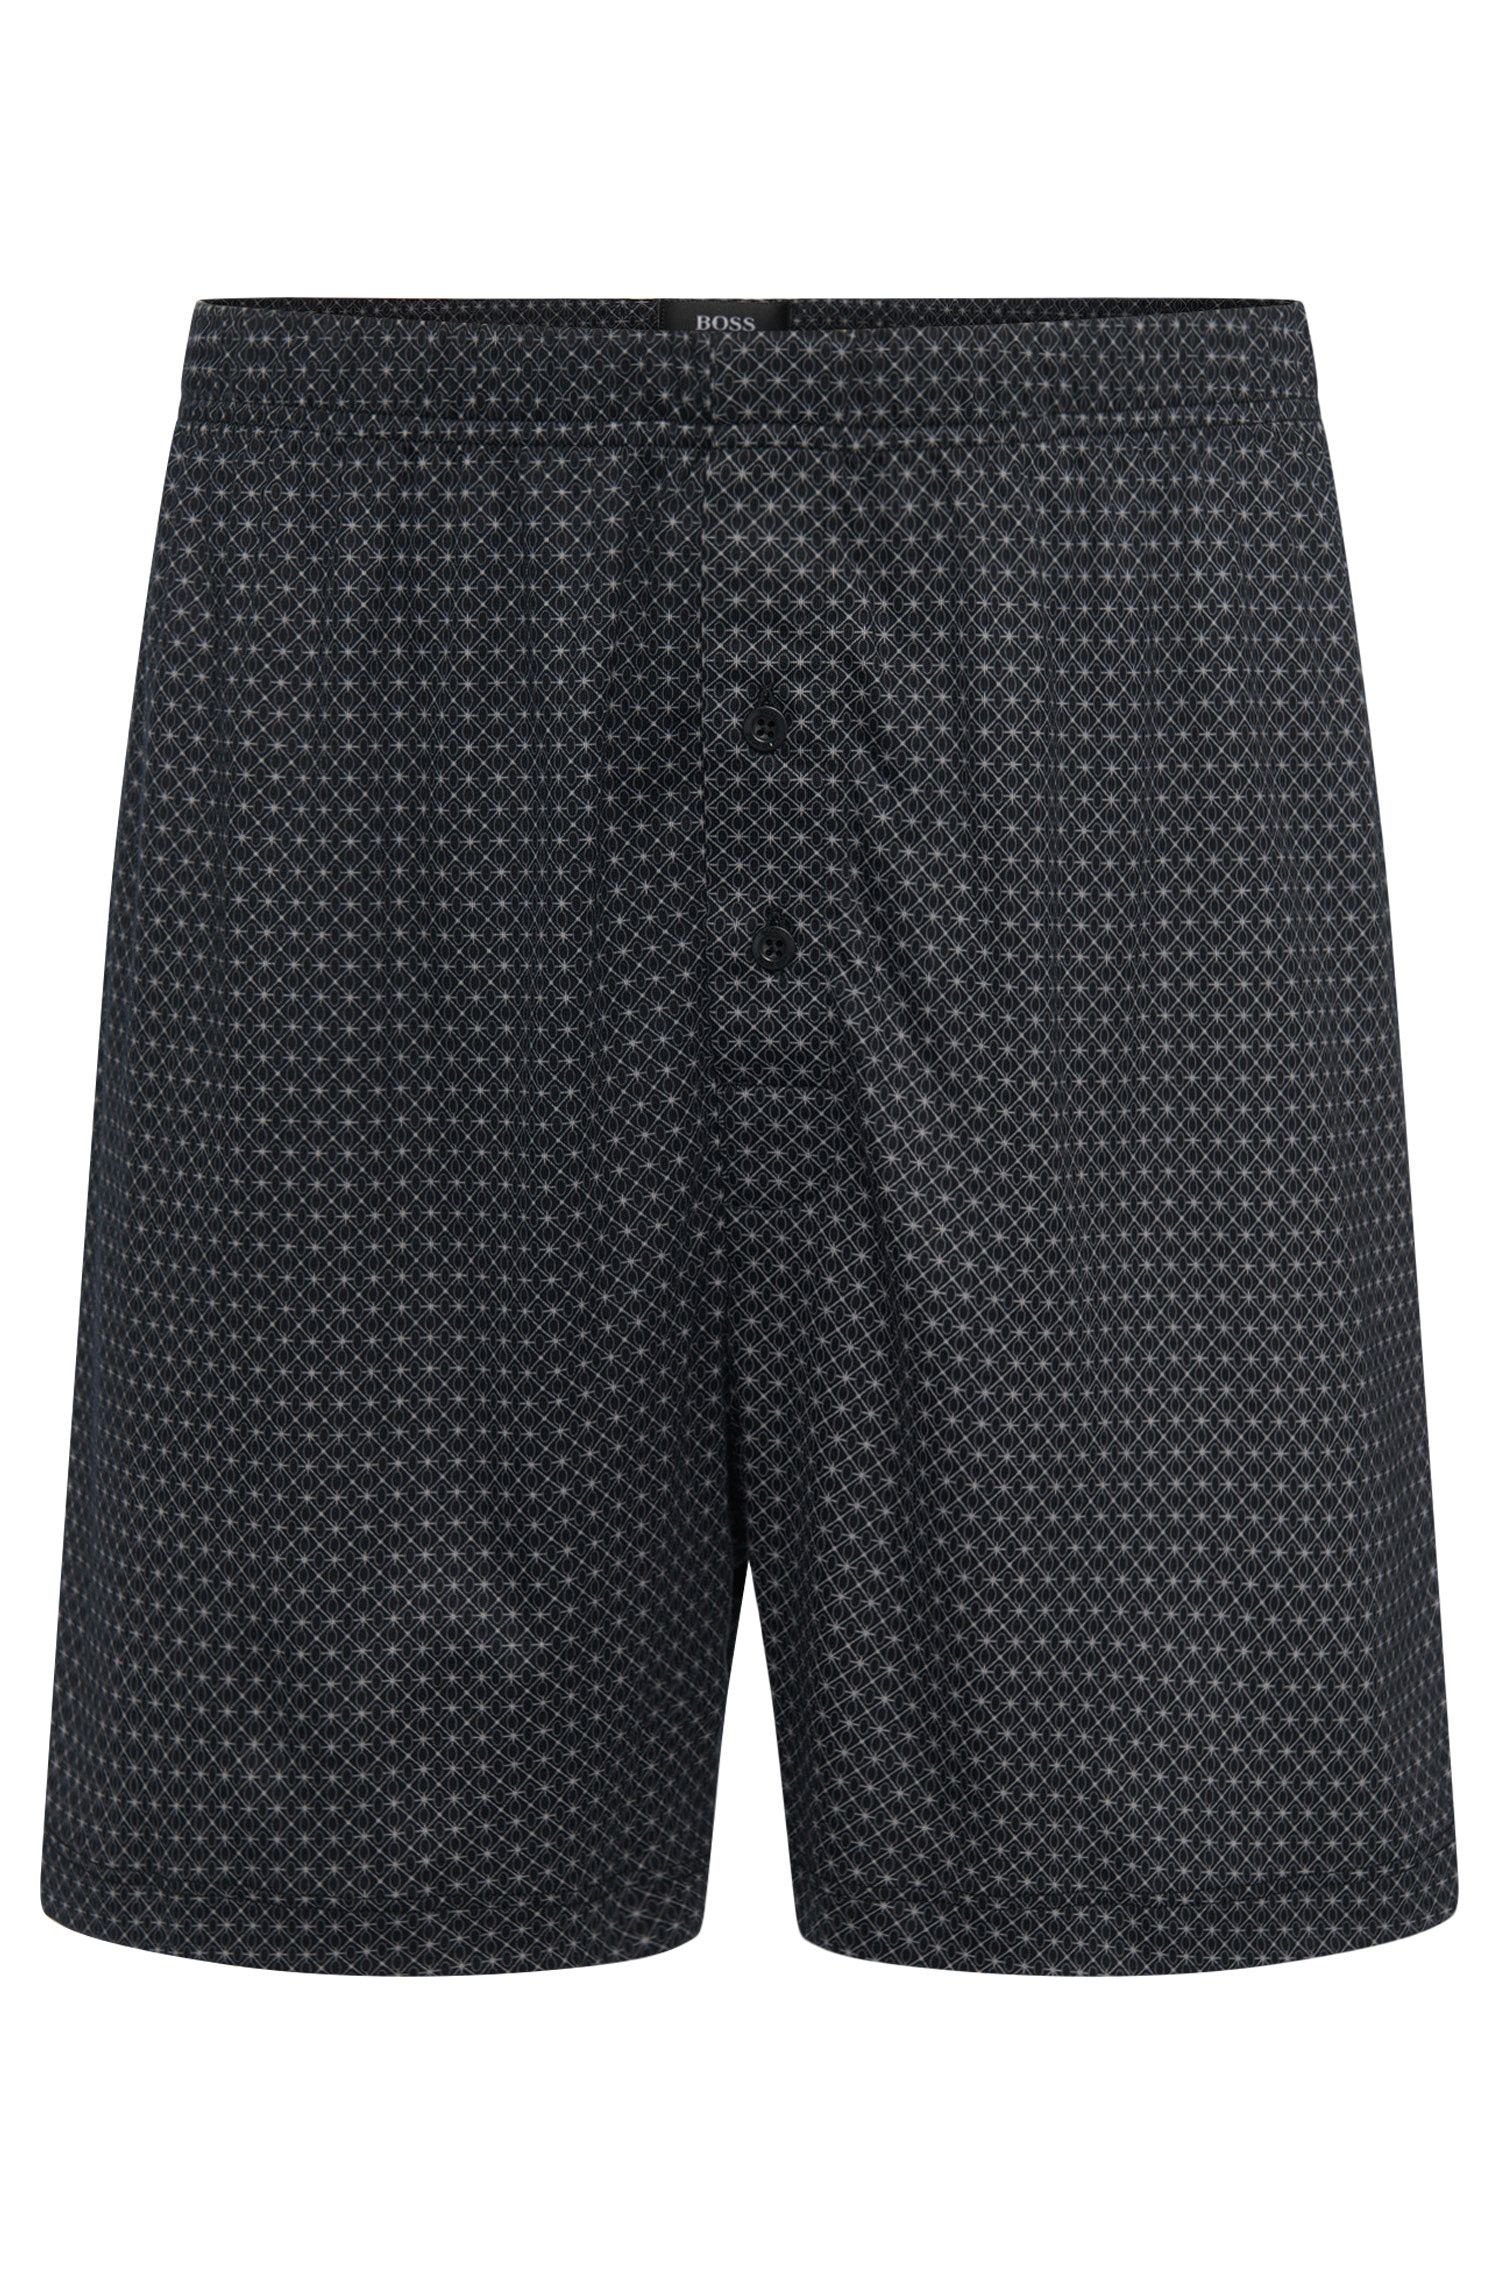 Patterned boxer shorts in a cotton blend with modal: 'Boxer Short CW'